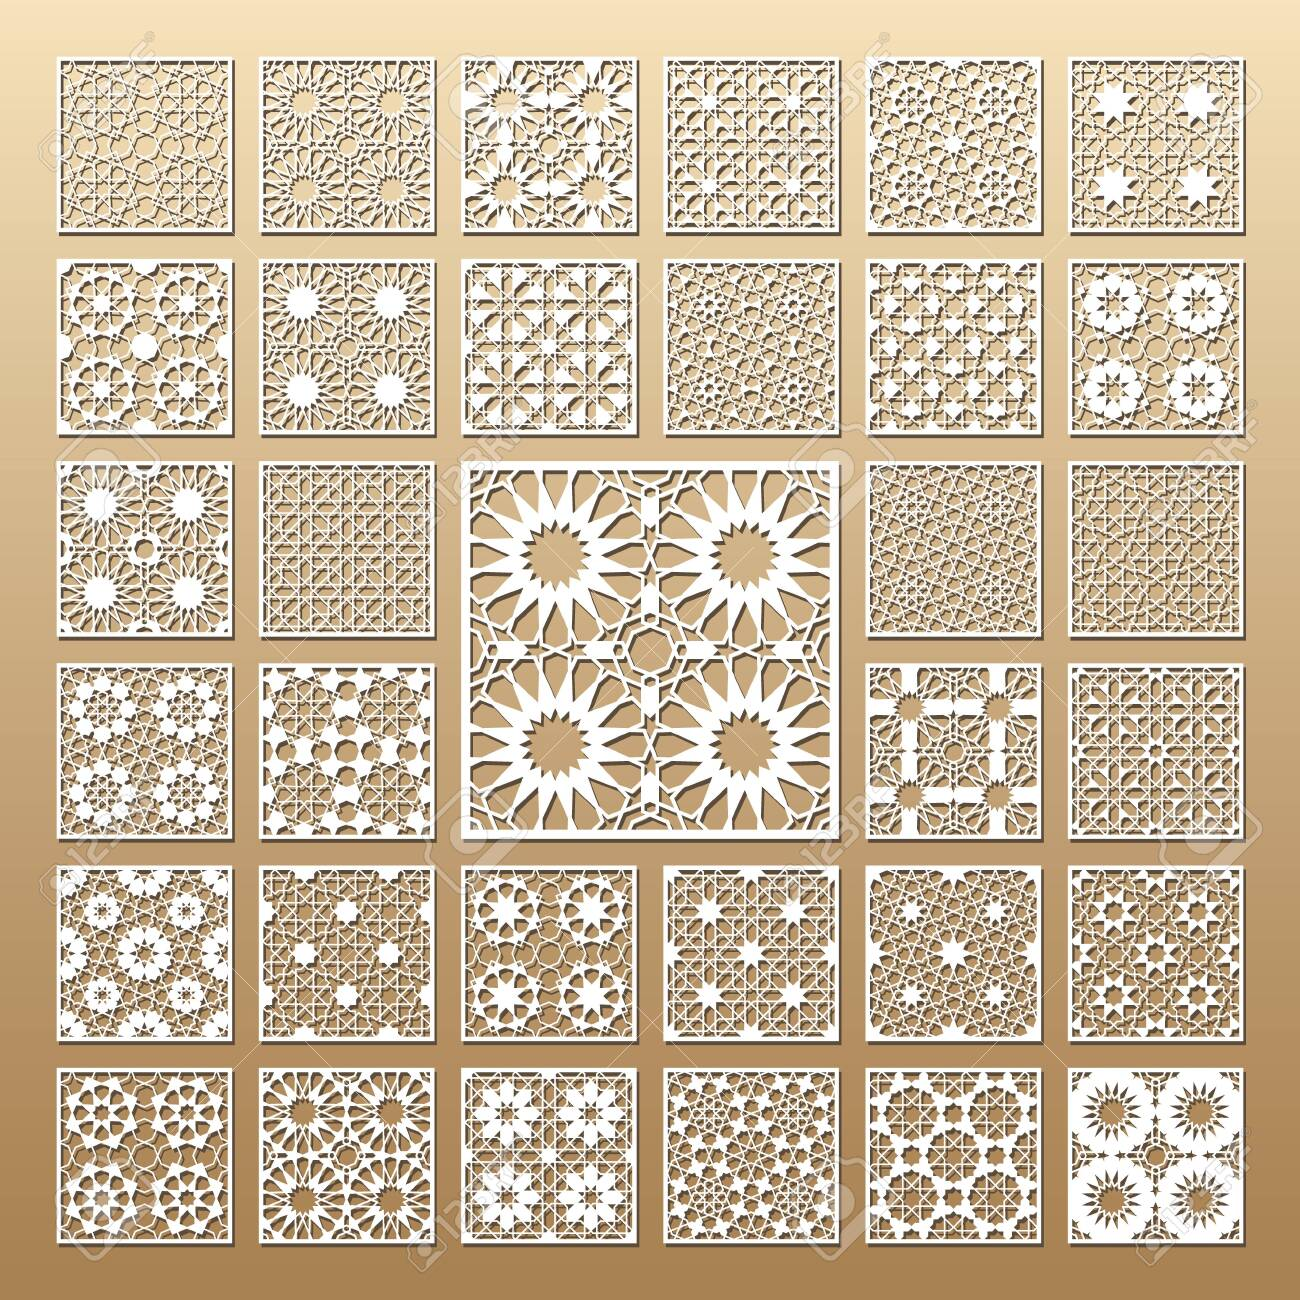 33 vector panels. Cutout silhouette with arabic (girih geometric) pattern. A picture suitable for printing invitations, laser cutting (engraving) stencil, wood and metal decorations. - 128957294